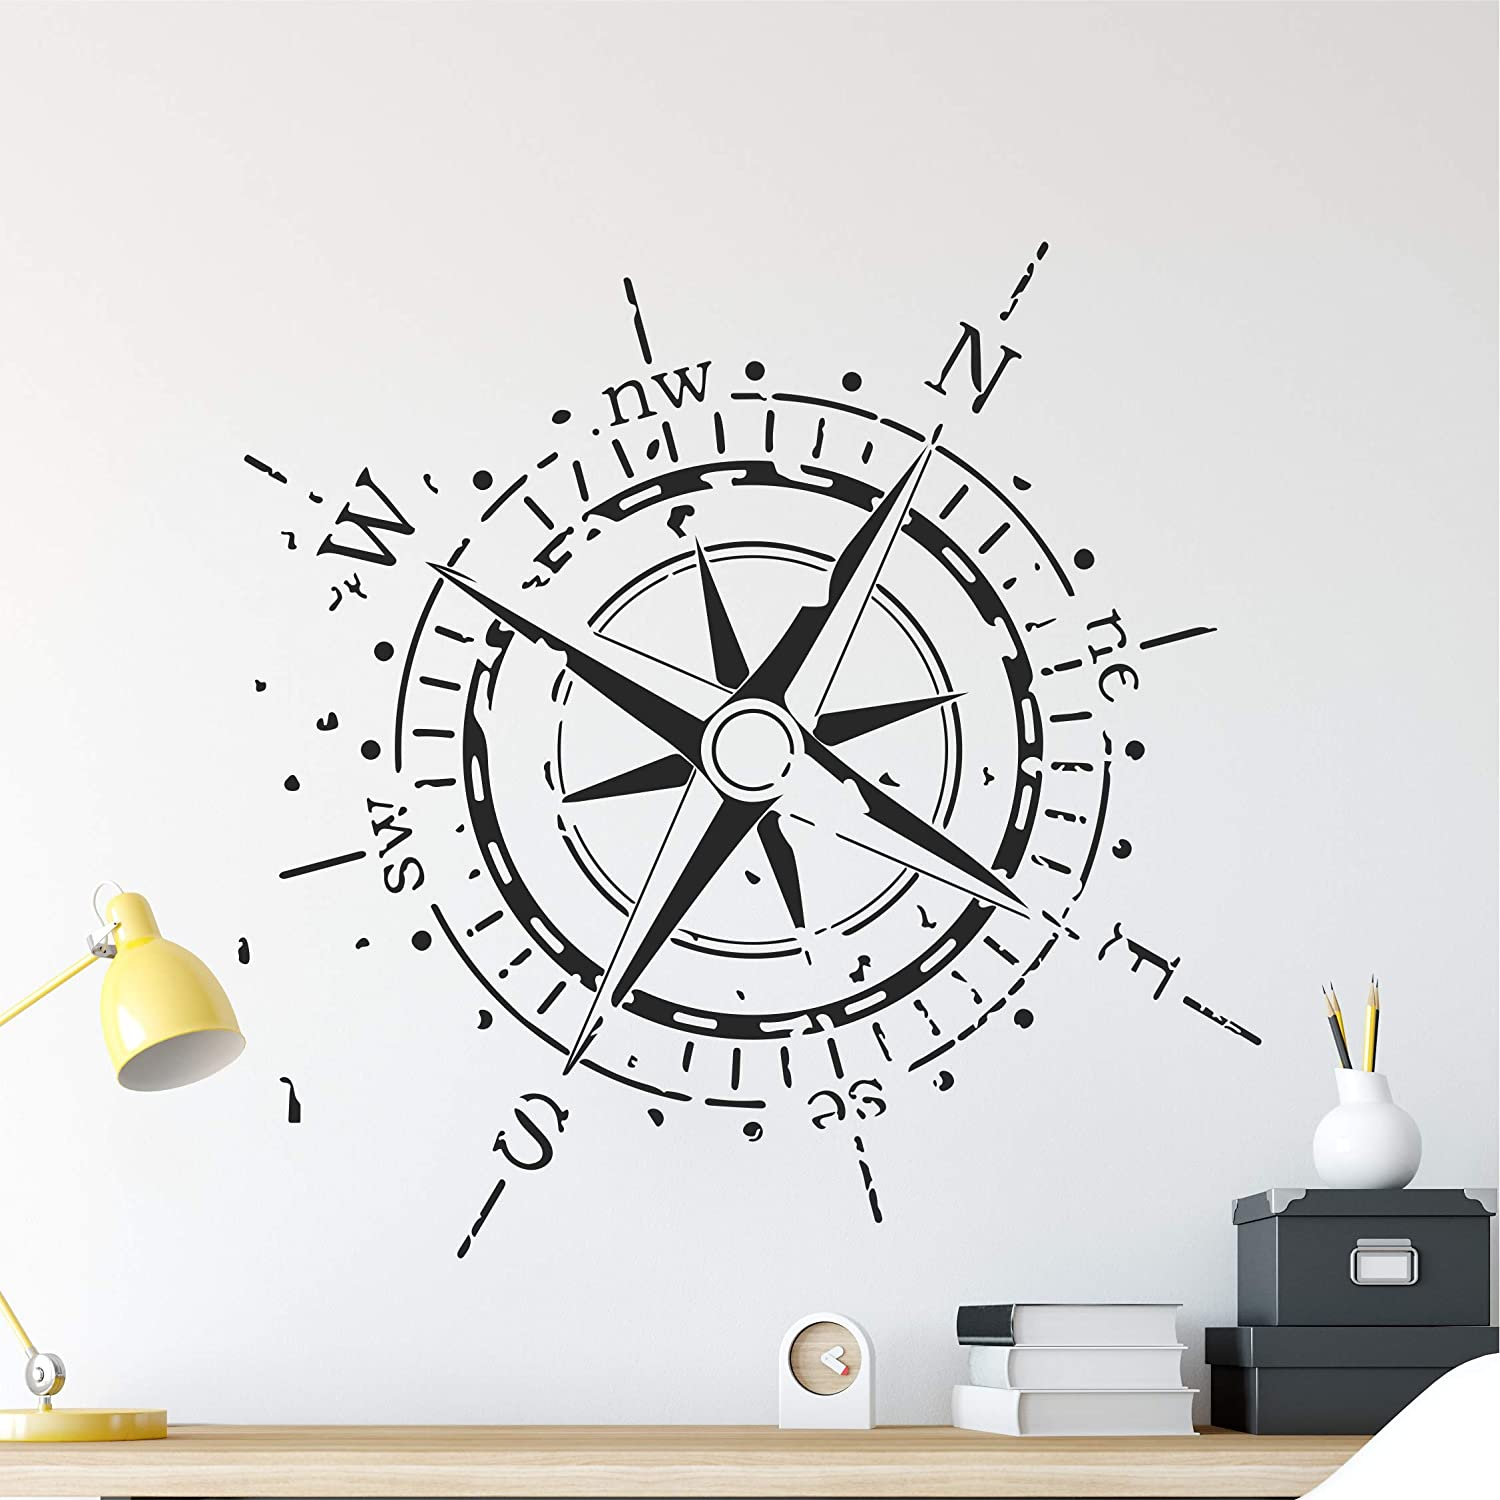 Wallency Navigation Compass Rose Wall High Quality Remov Max 70% OFF - Max 80% OFF Decal